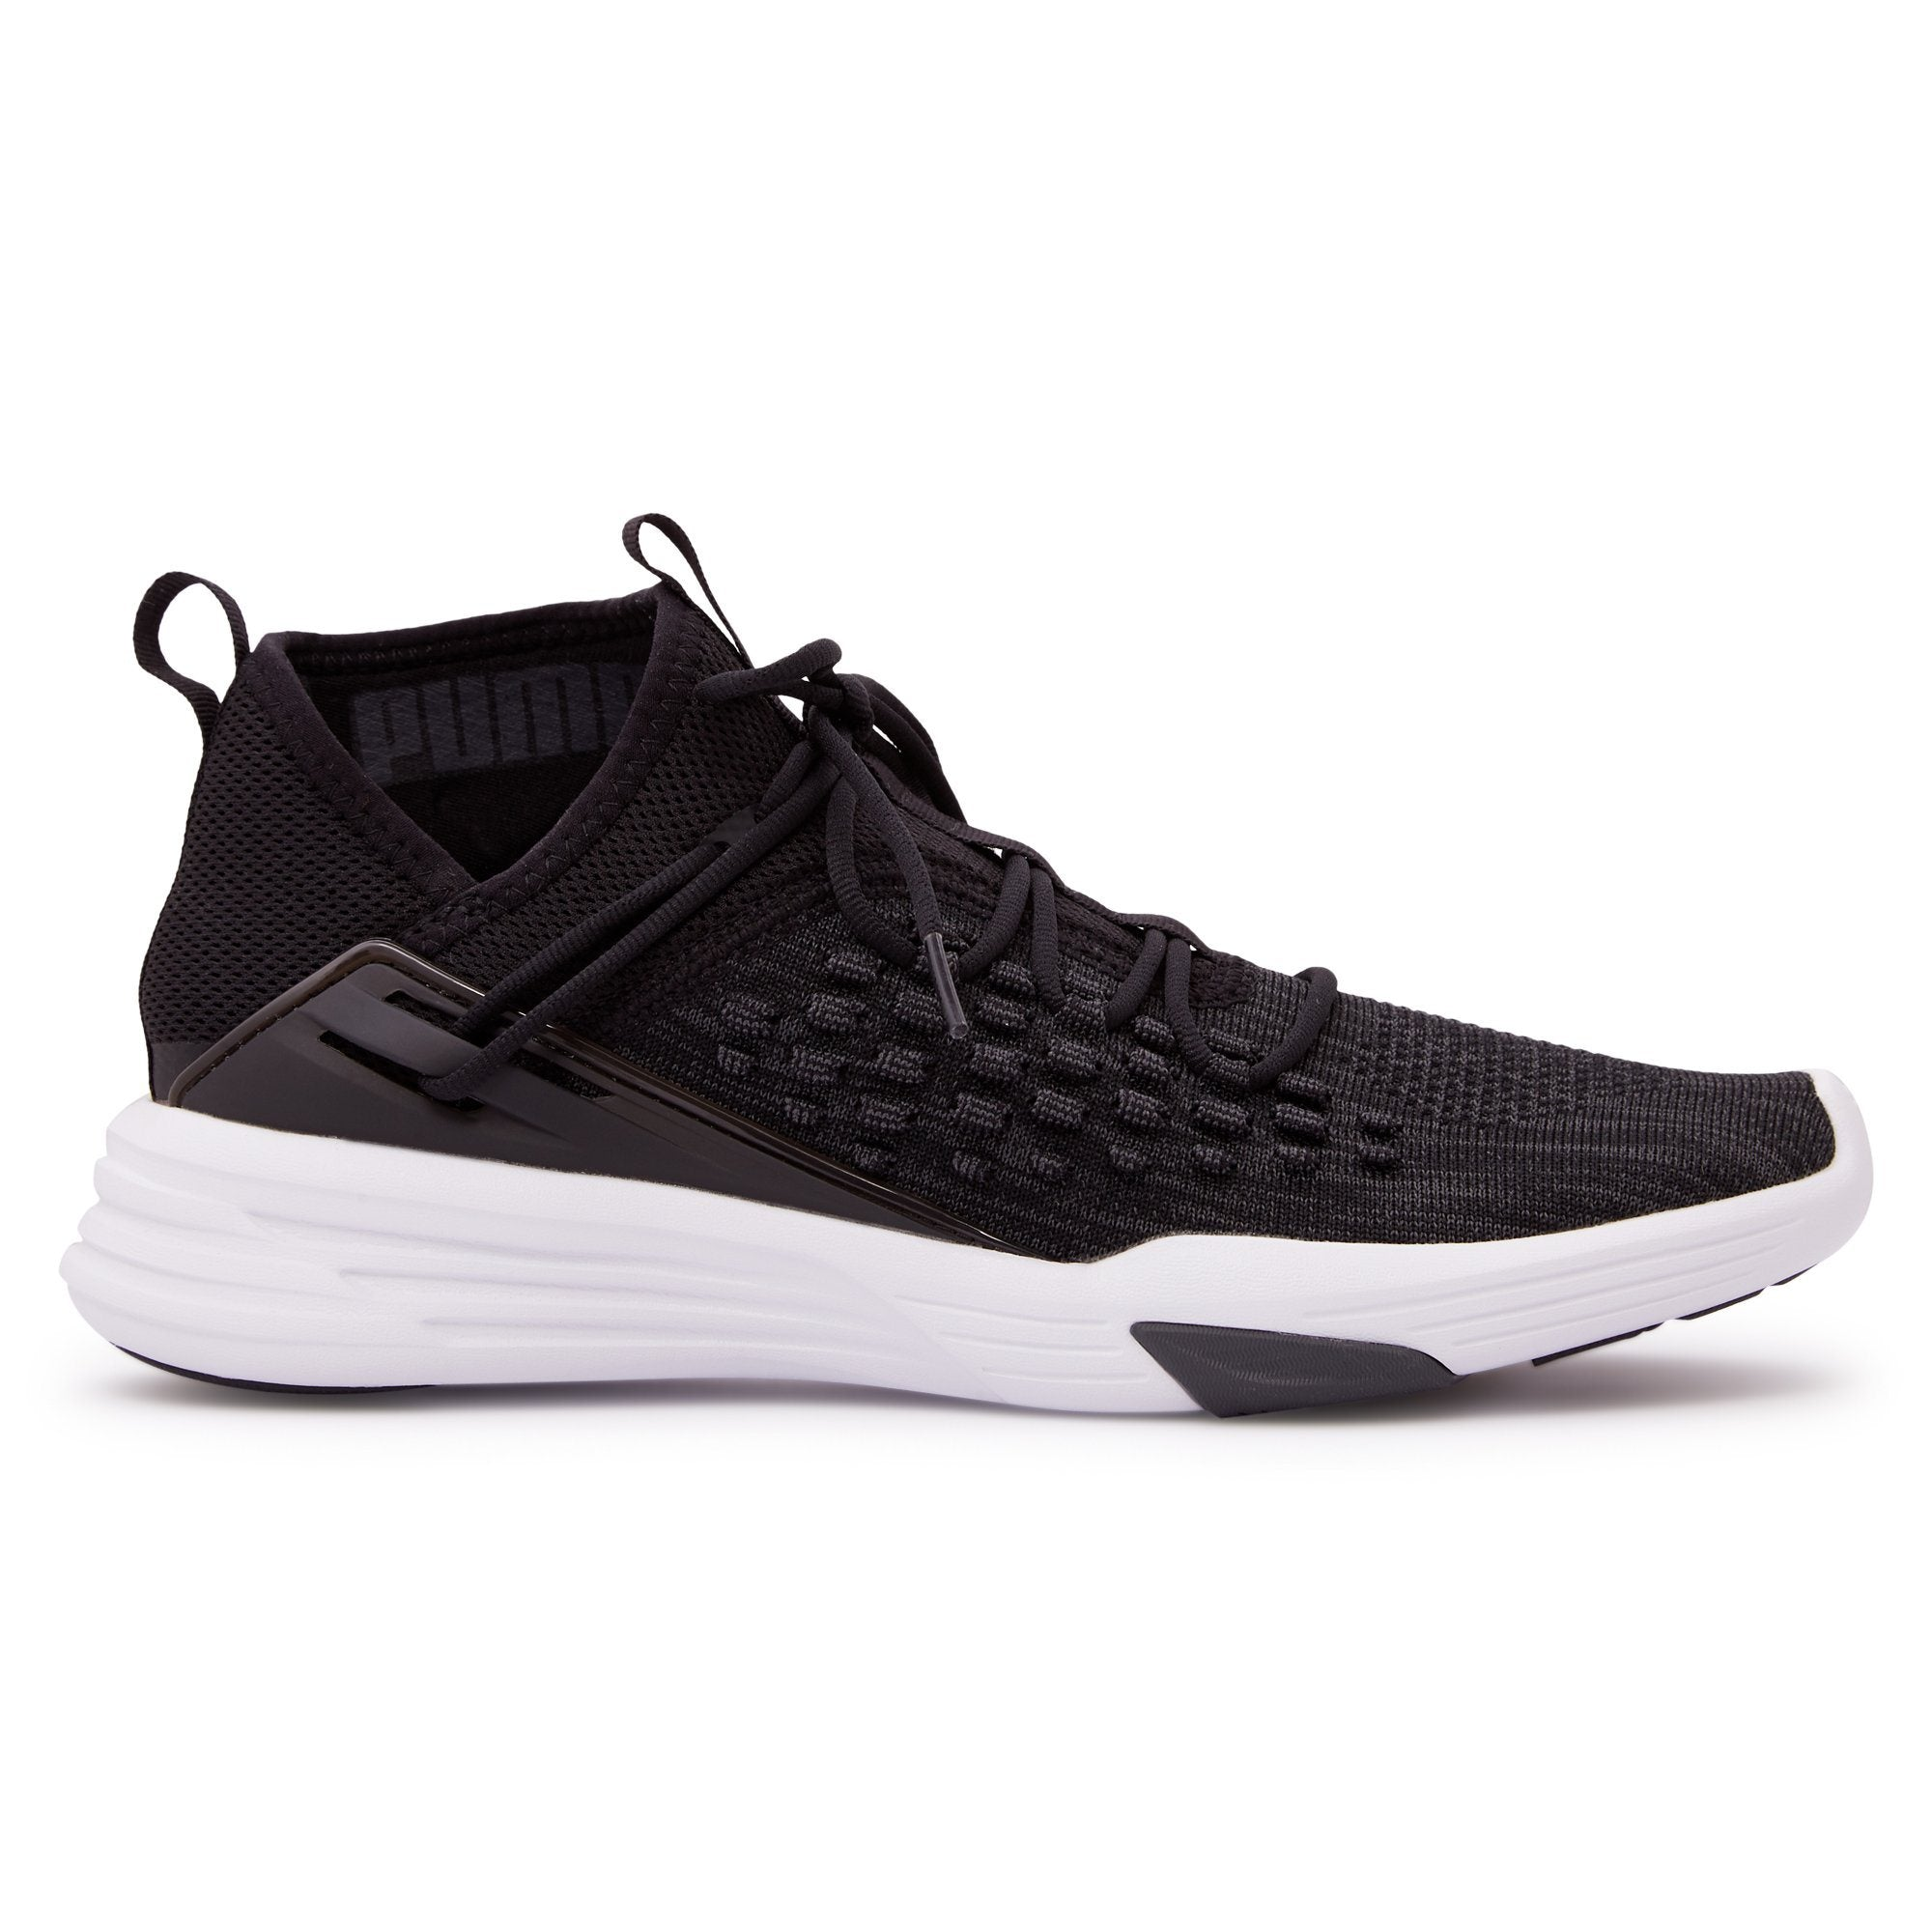 Puma Men's Mantra Fusefit - Black/White Footwear Puma